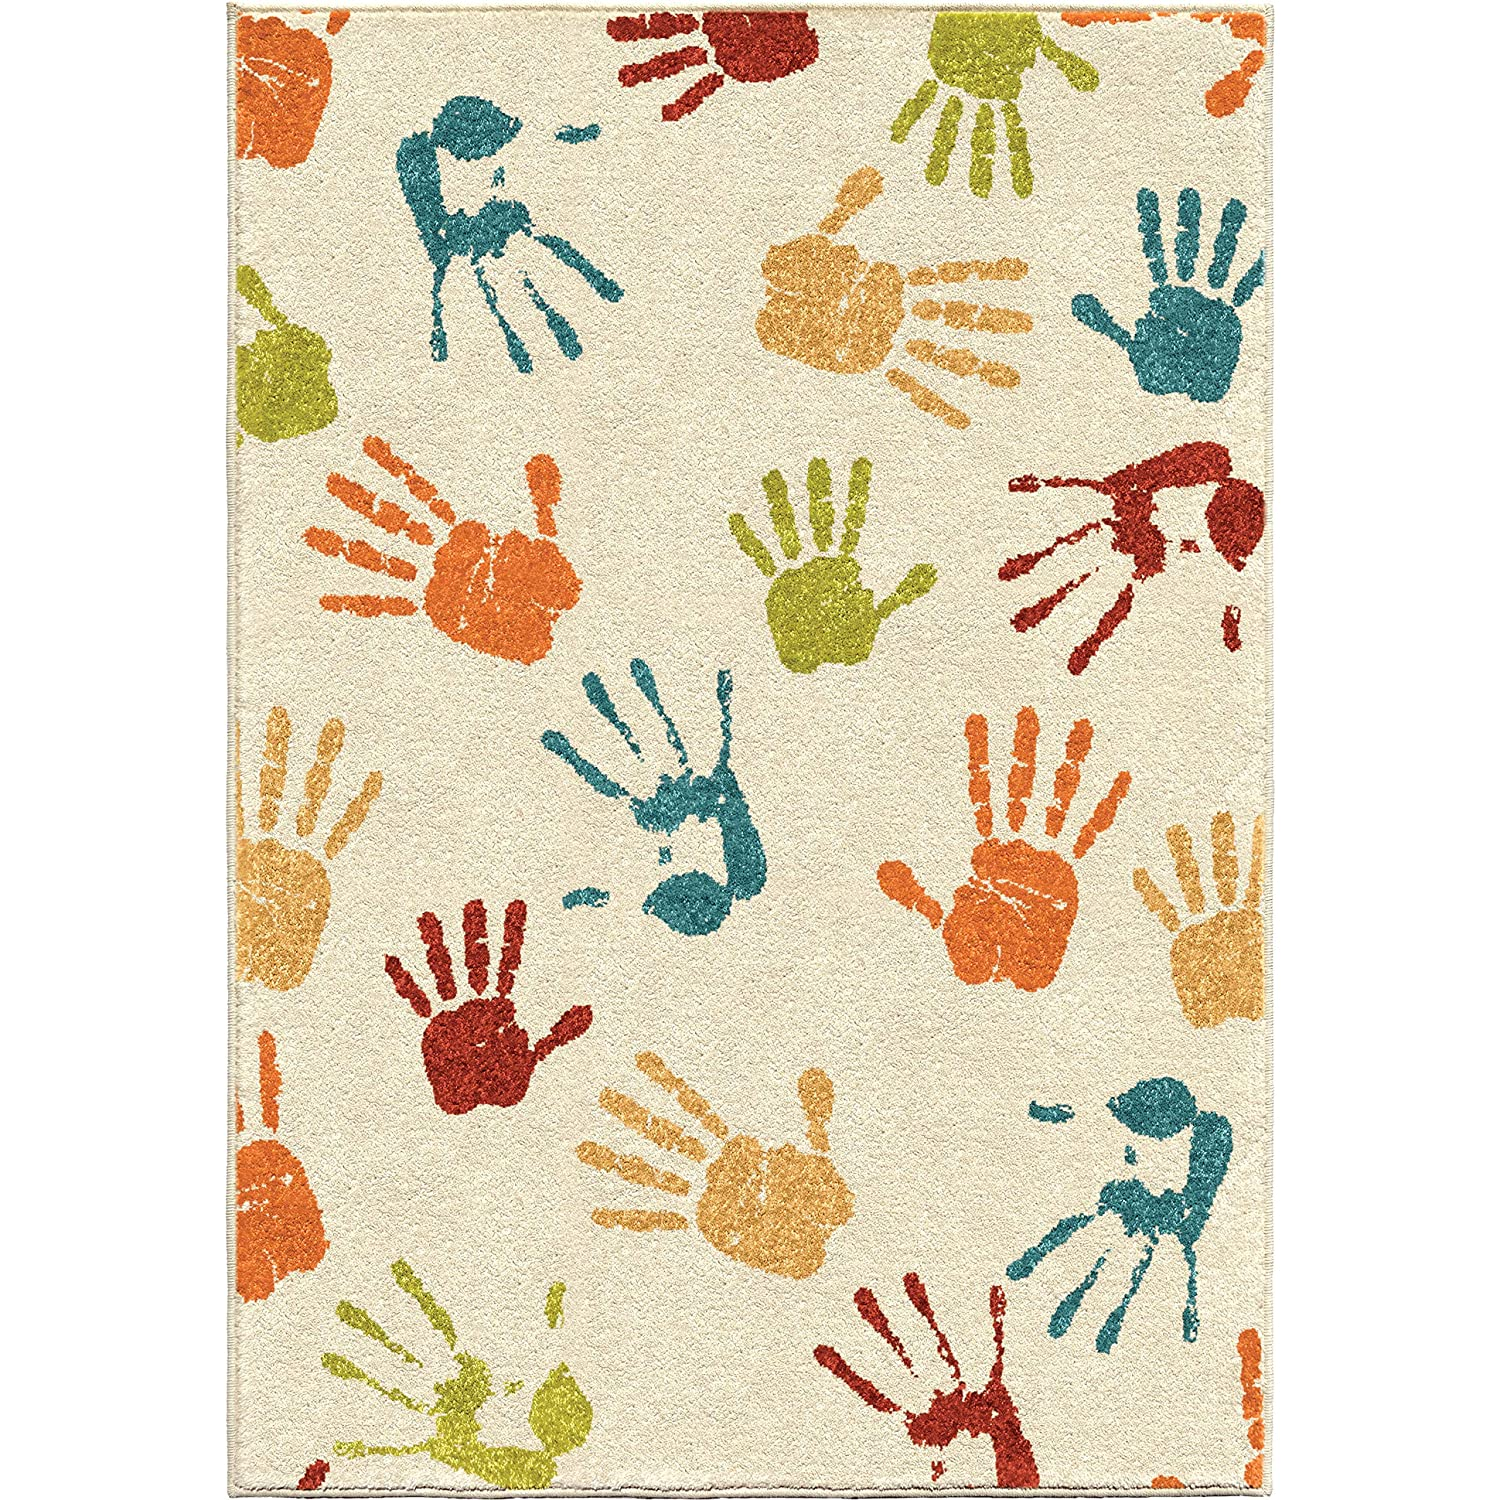 Amazon Com Orian Rugs Kids Court Handprints Area Rug 5 2 X 7 6